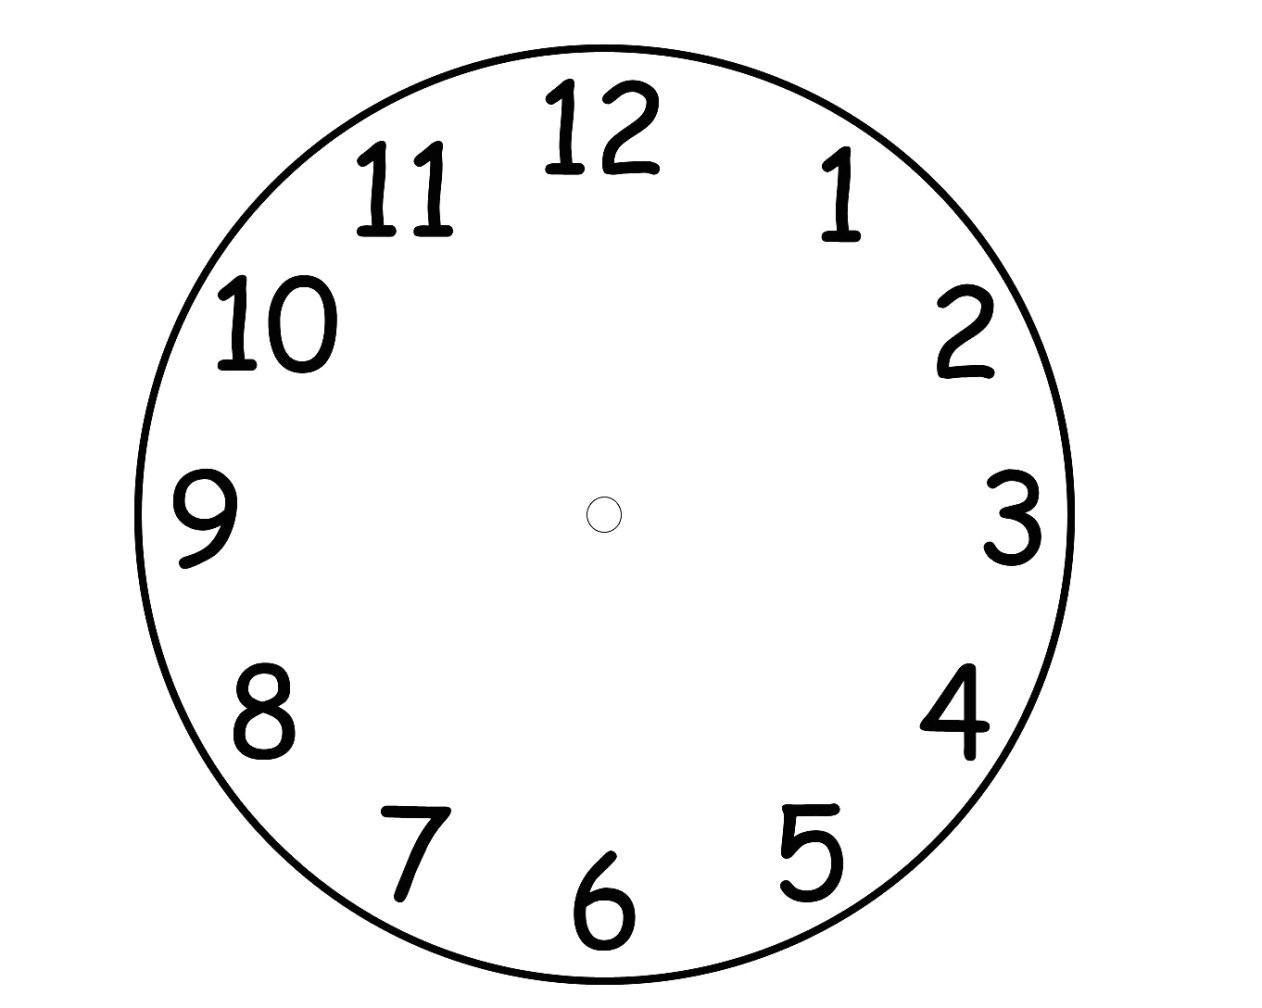 Clock Face Templates for Printing Printable Clock Face Template Pdf